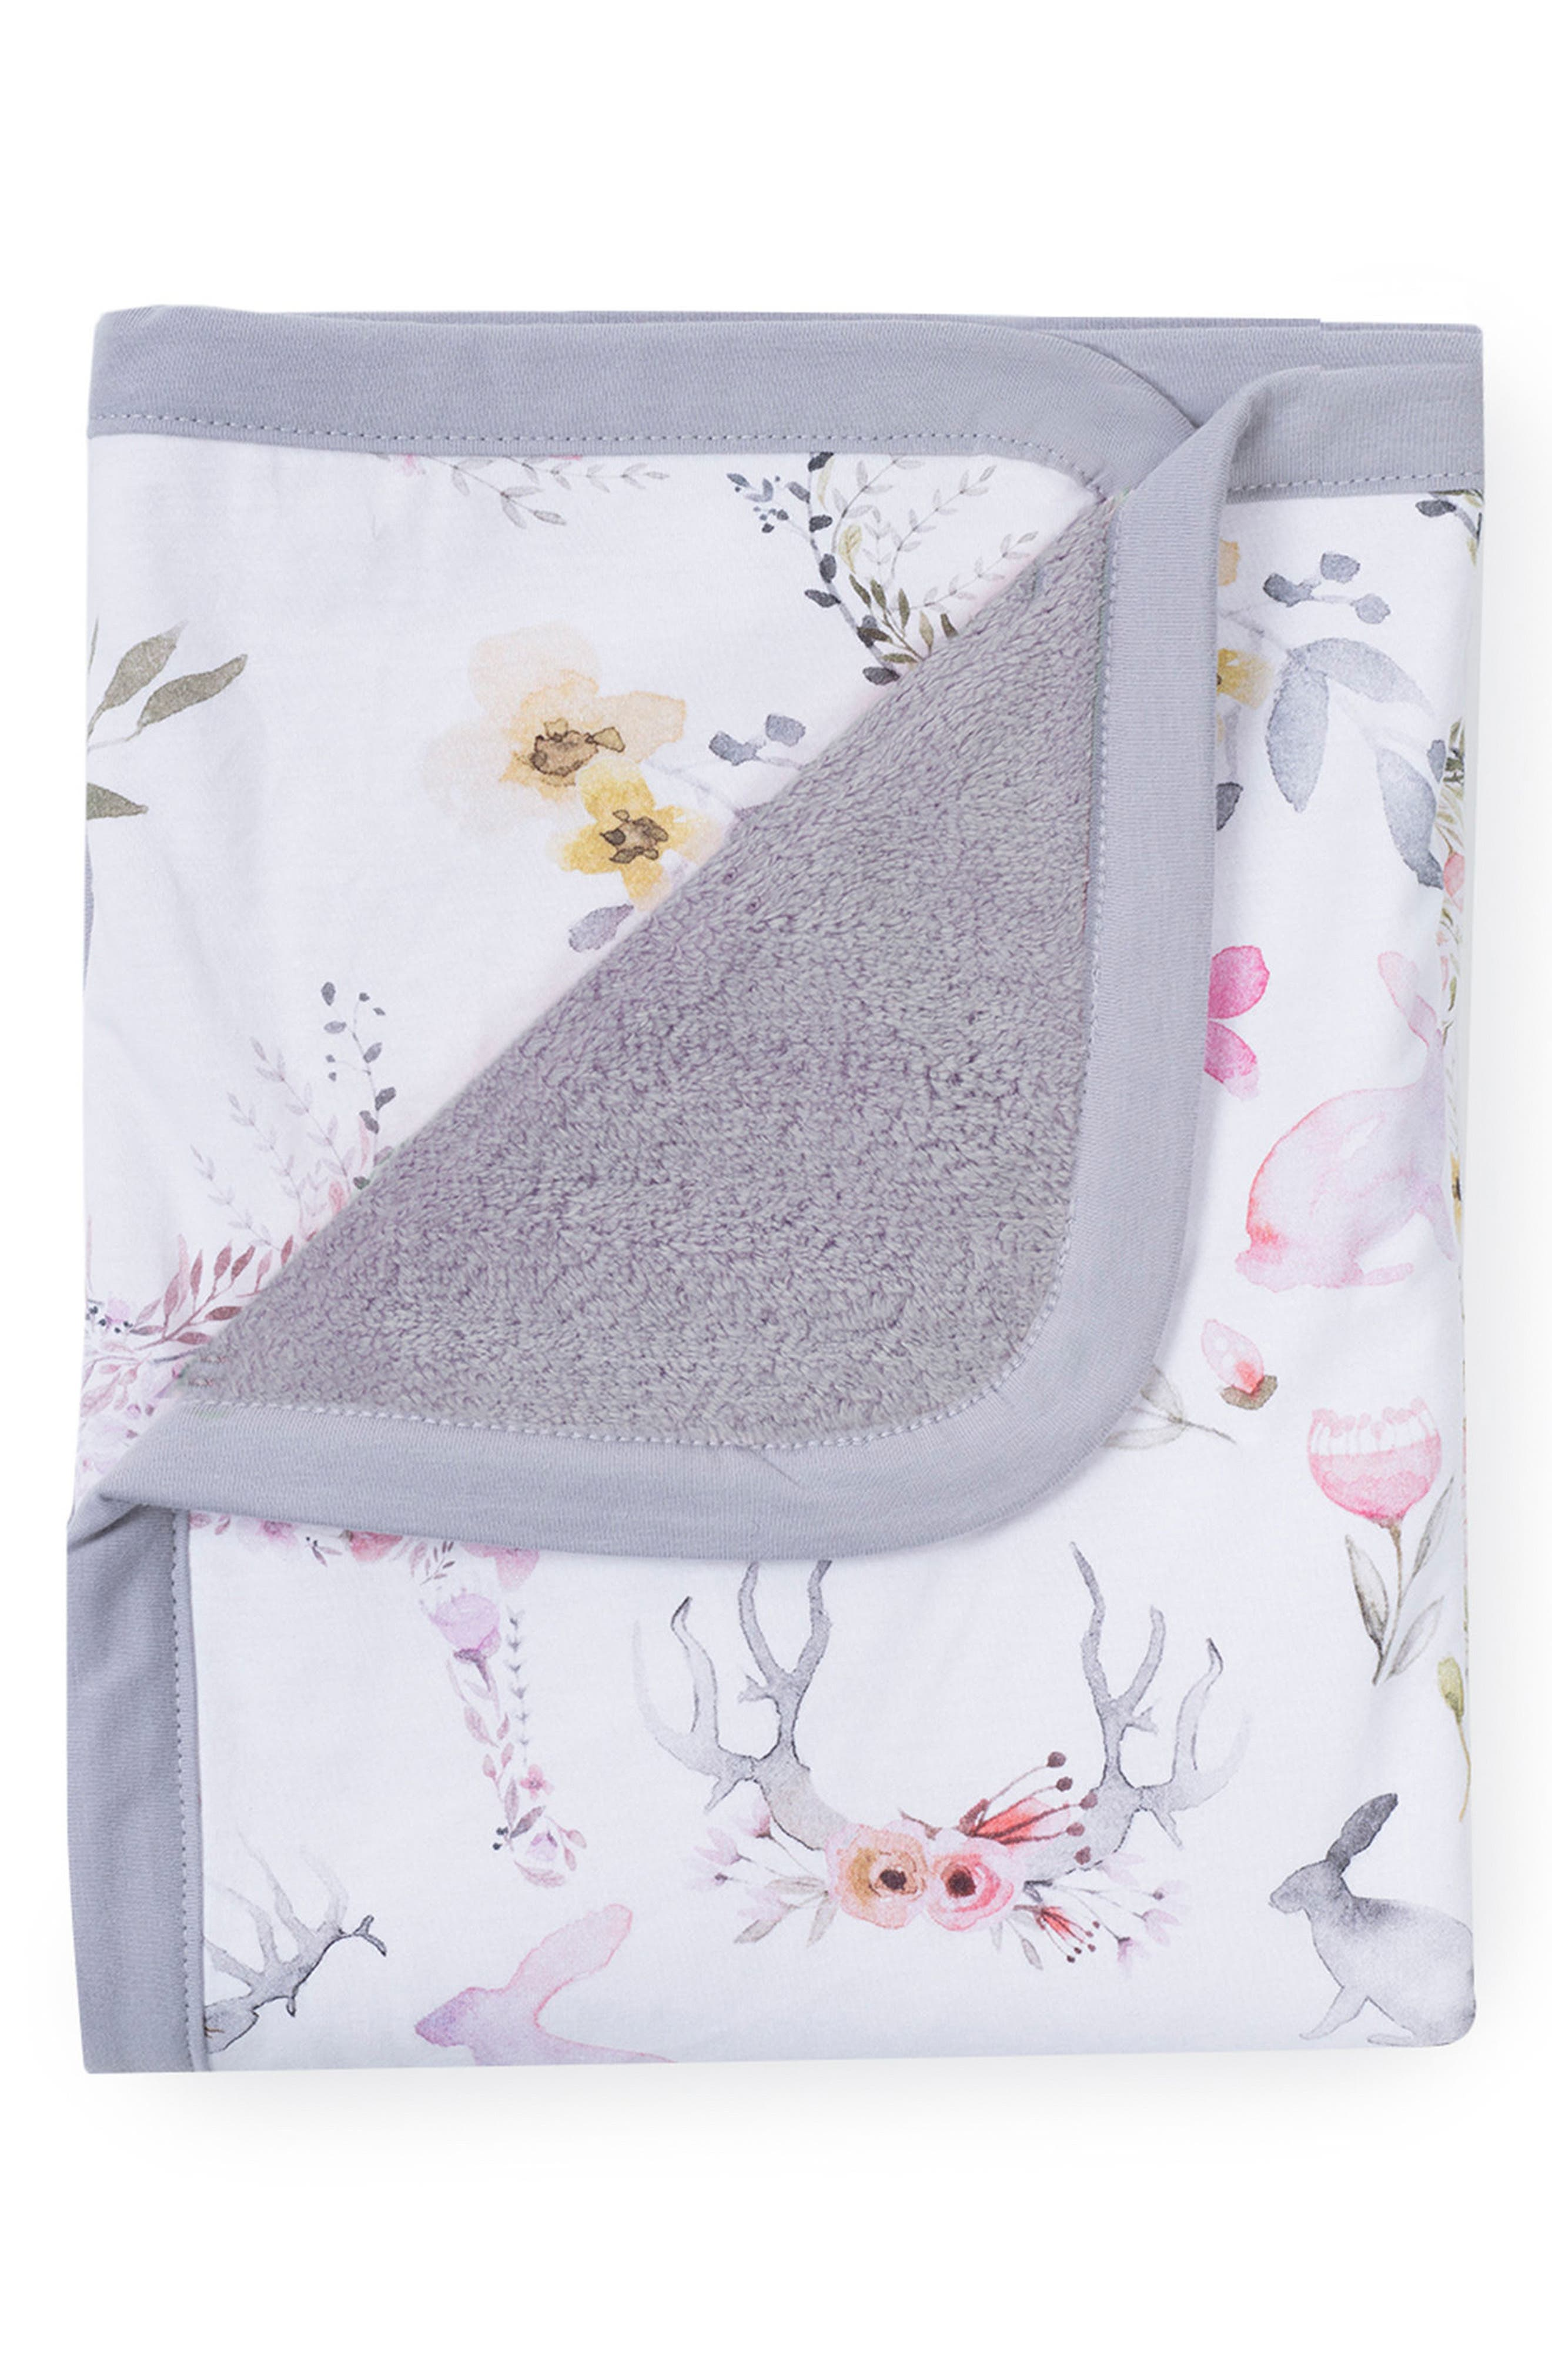 OILO, Fawn Cuddle Blanket, Main thumbnail 1, color, FAWN